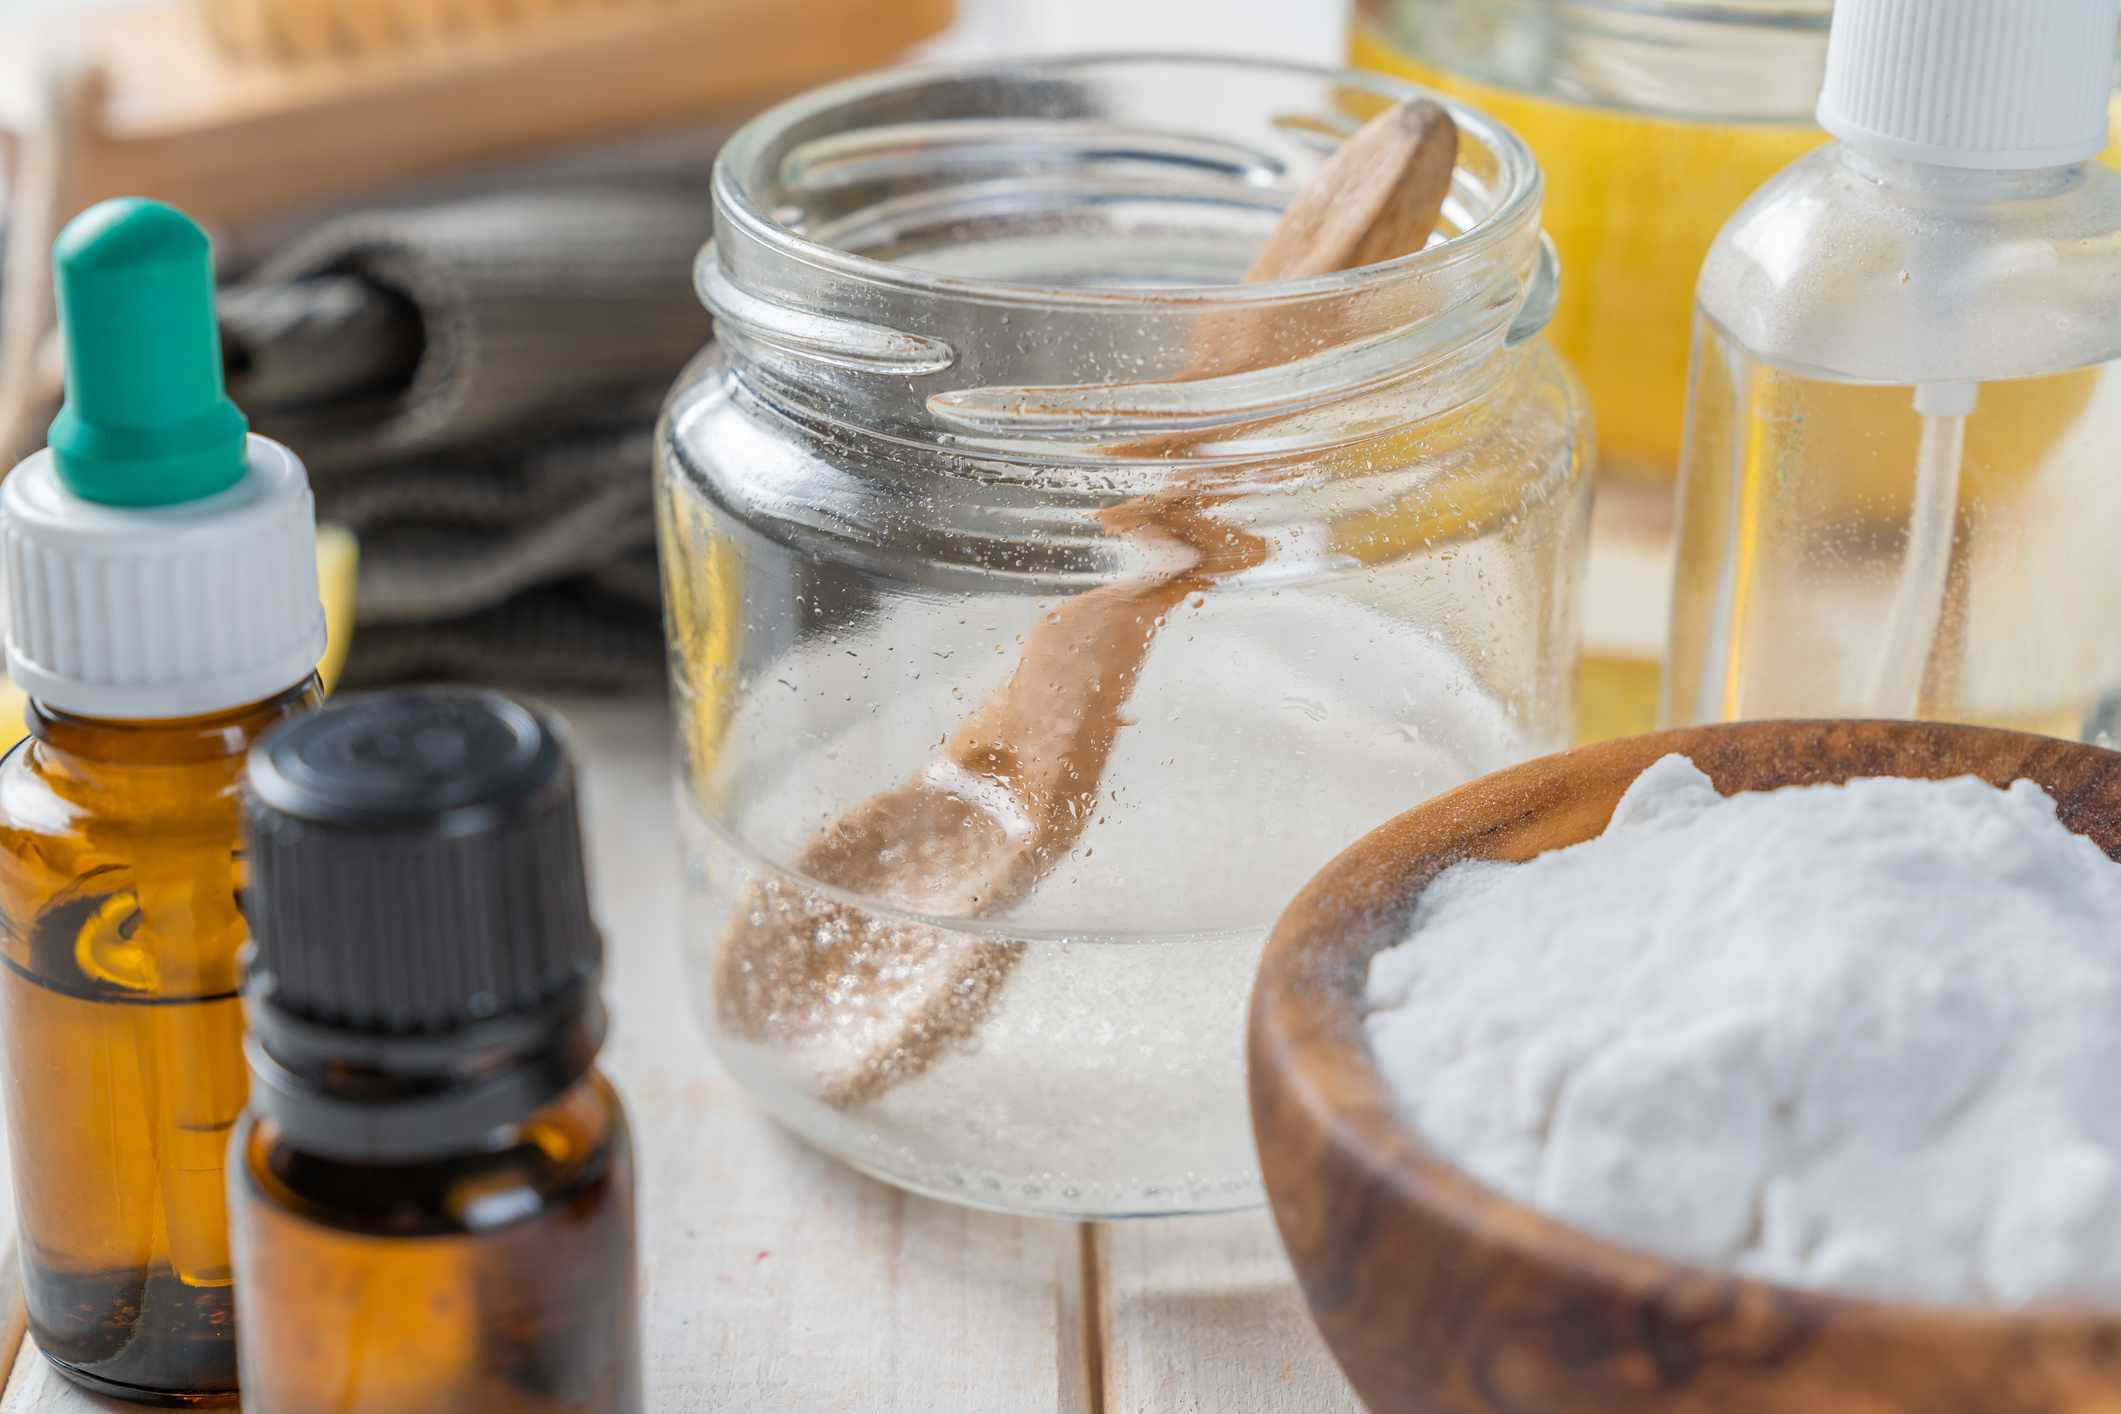 Cleaning ingredients including vinegar, oils and baking soda.